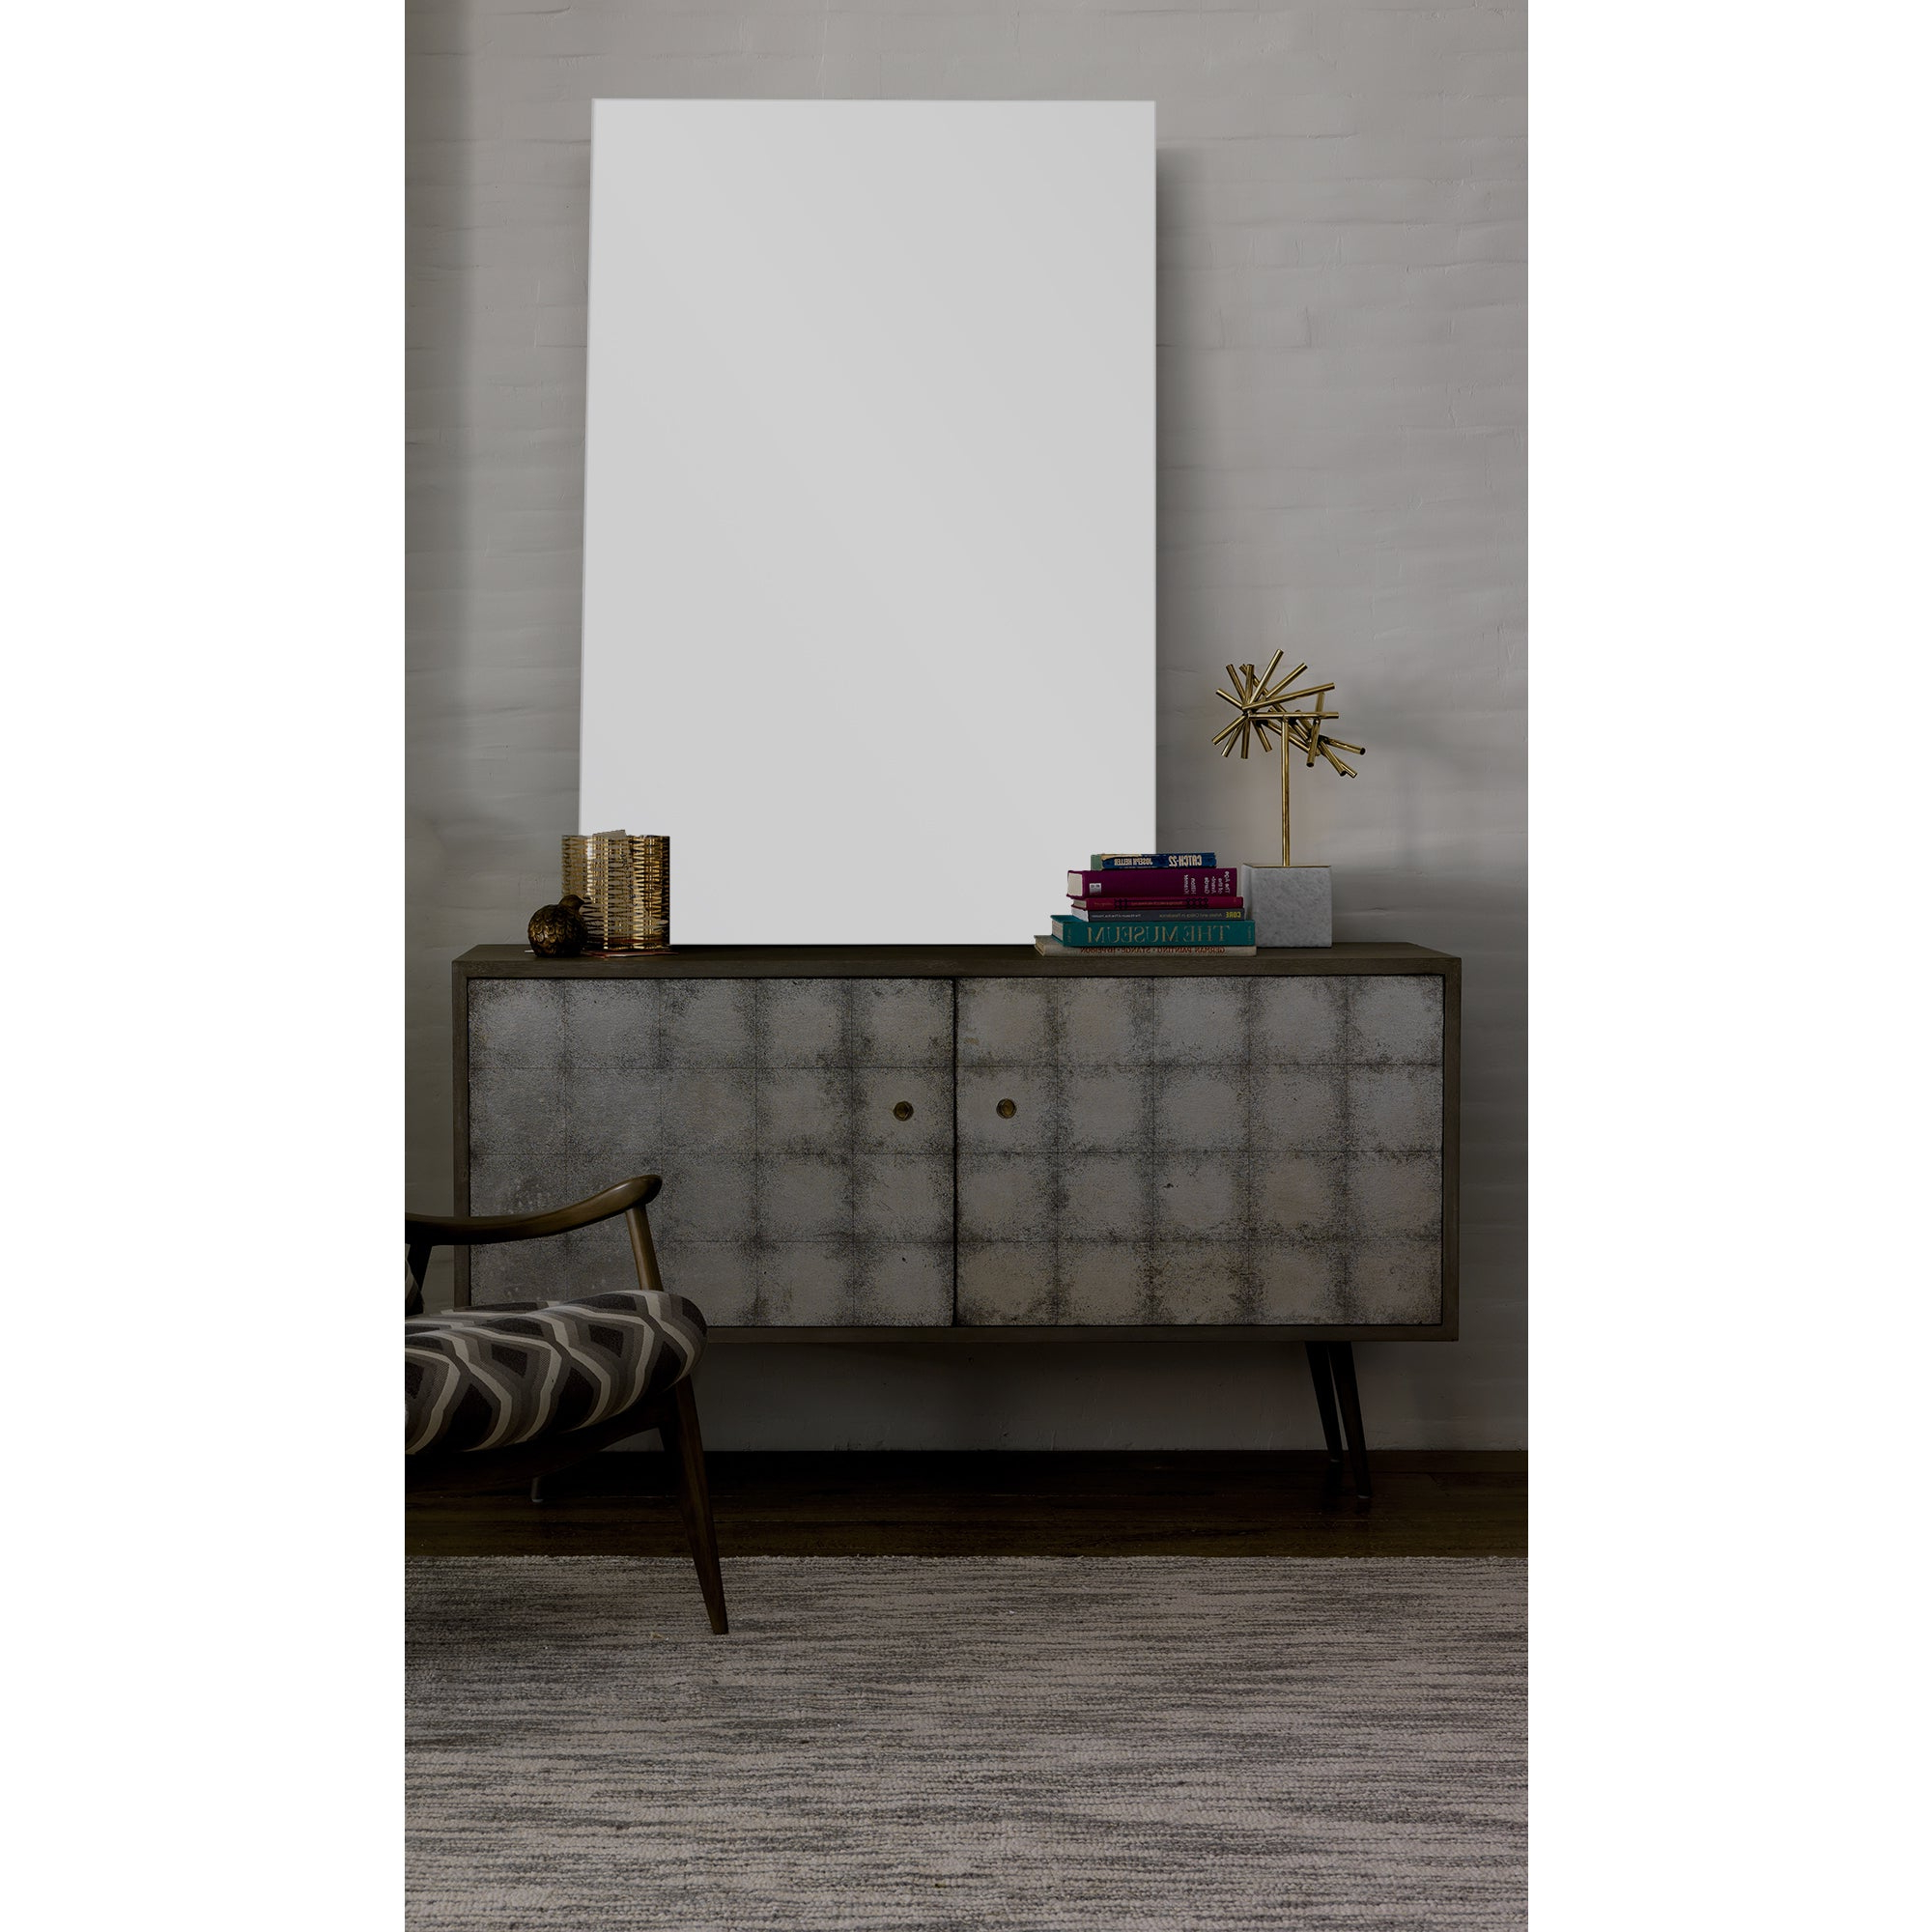 Preferred Ren Wil Olafia Unframed Wall Mirror Regarding Unframed Wall Mirrors (View 20 of 20)